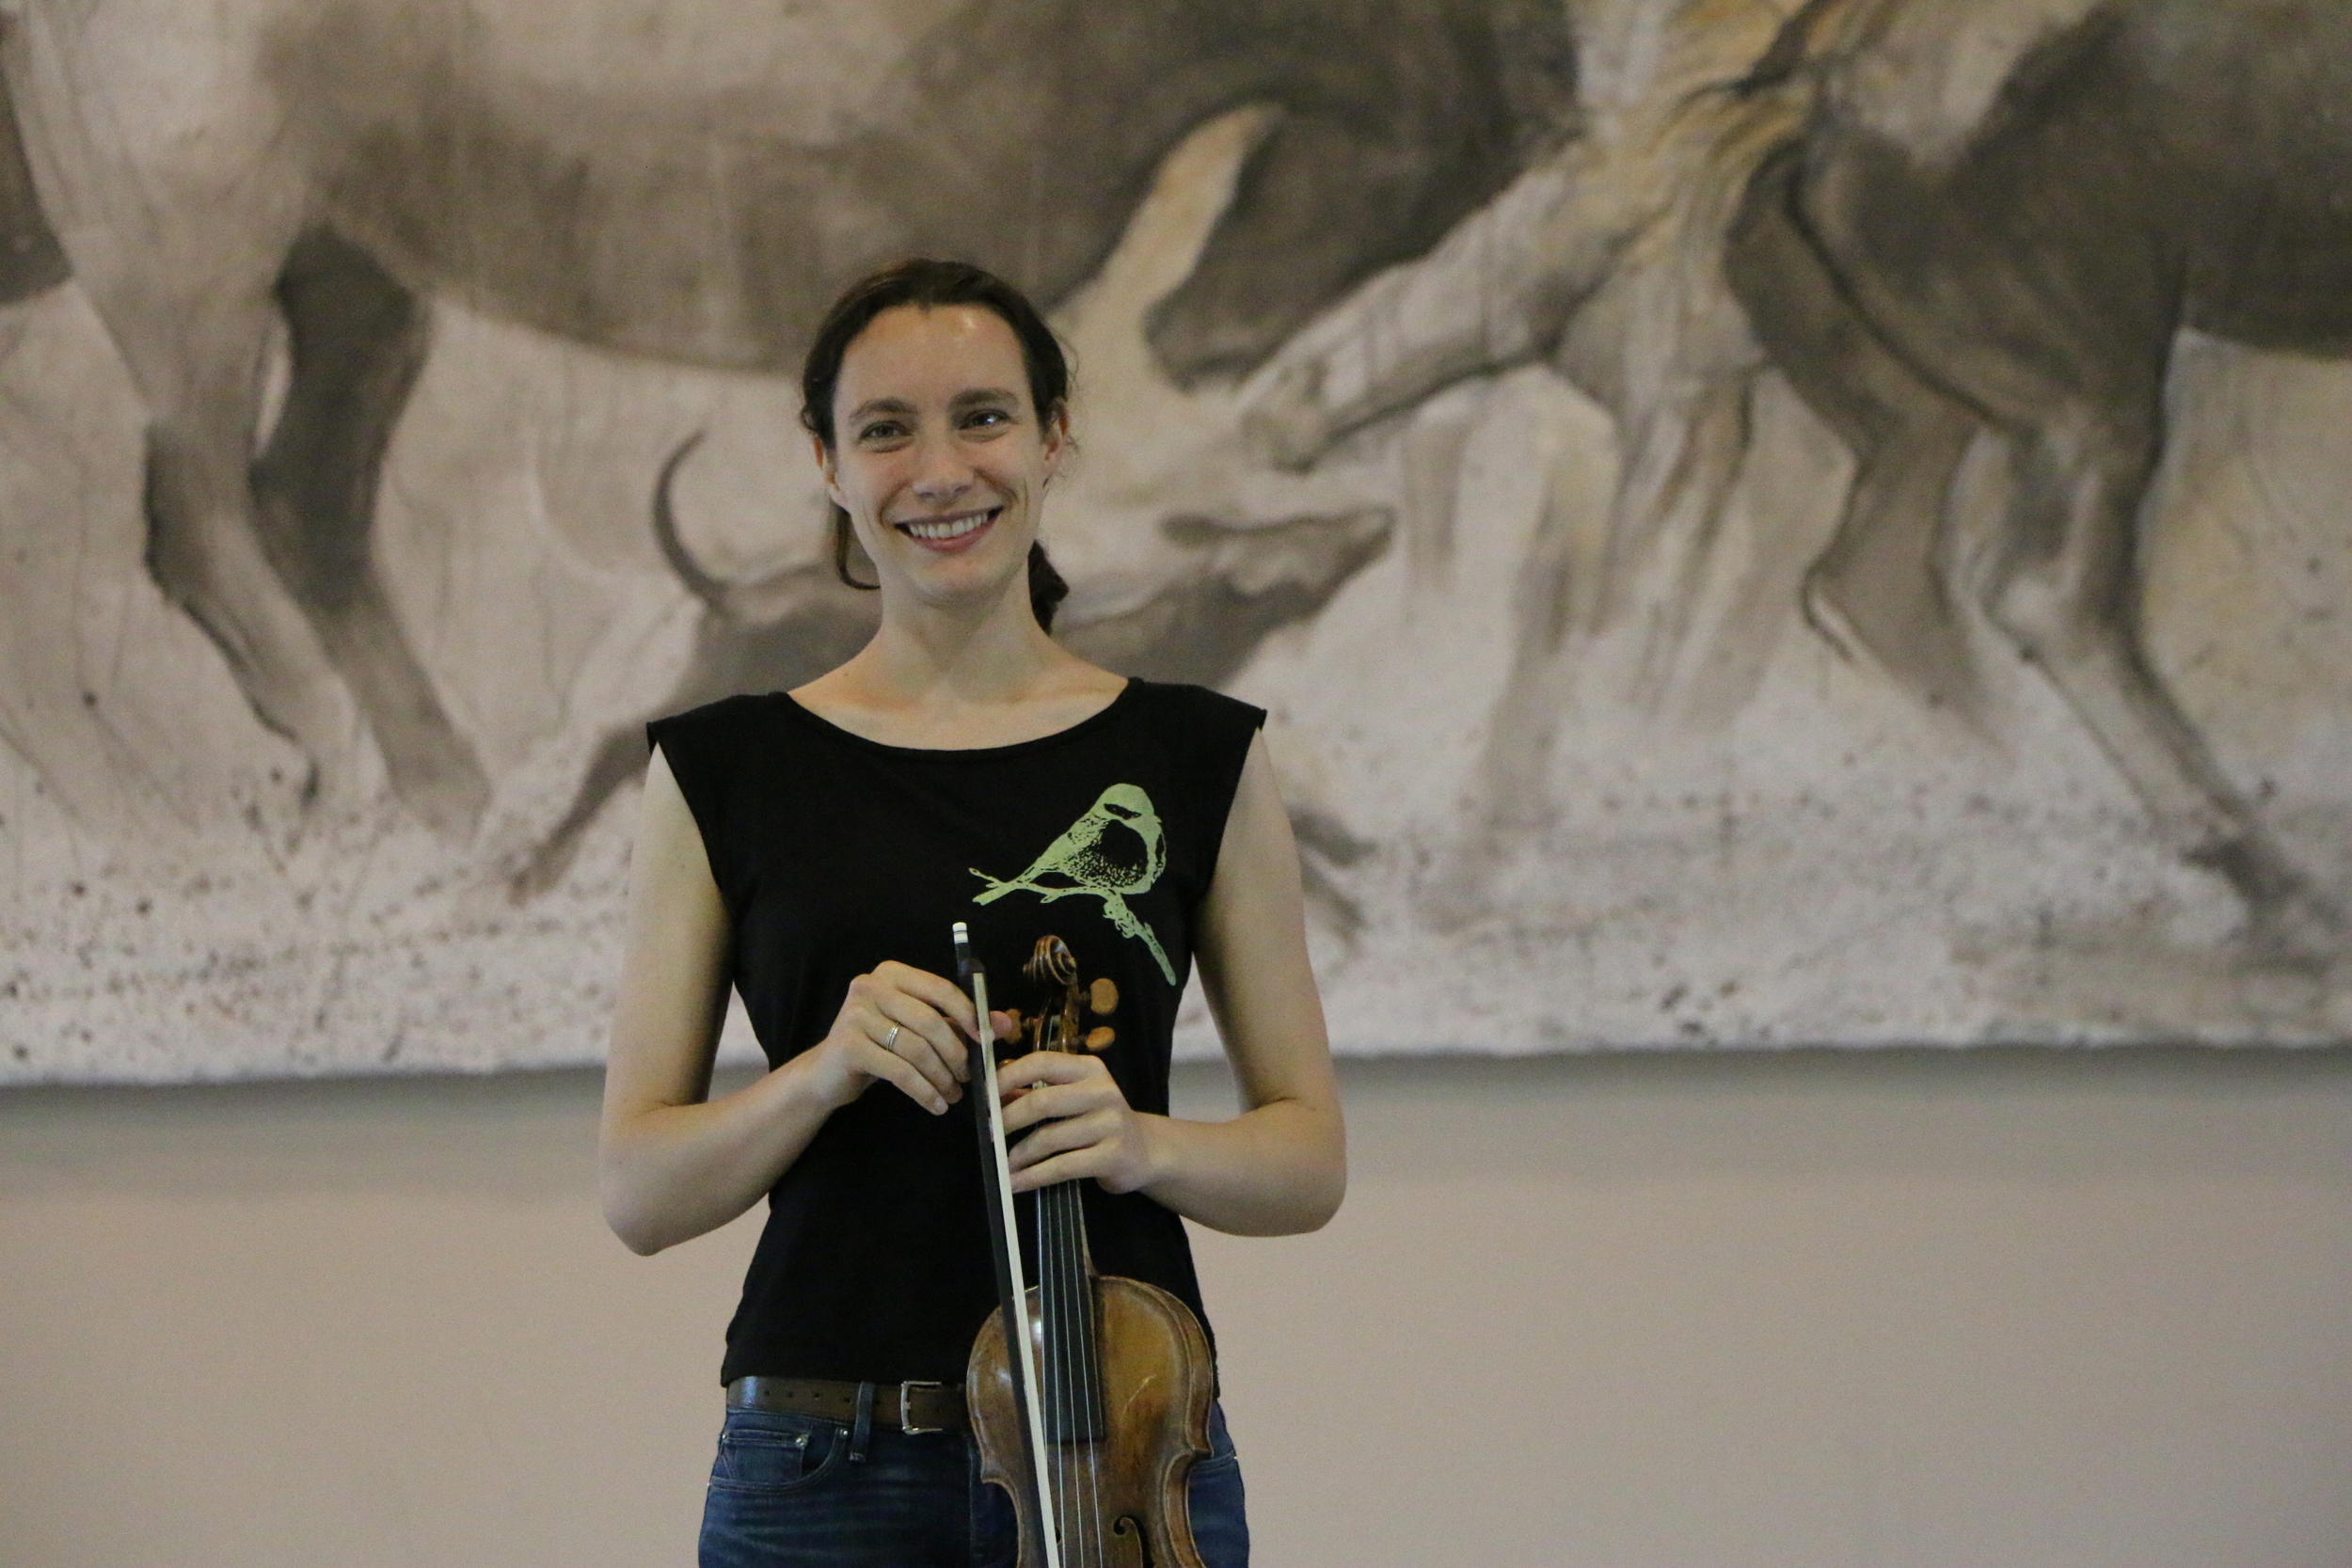 Liv Heym rehearsing Querencia by Michele Wiles